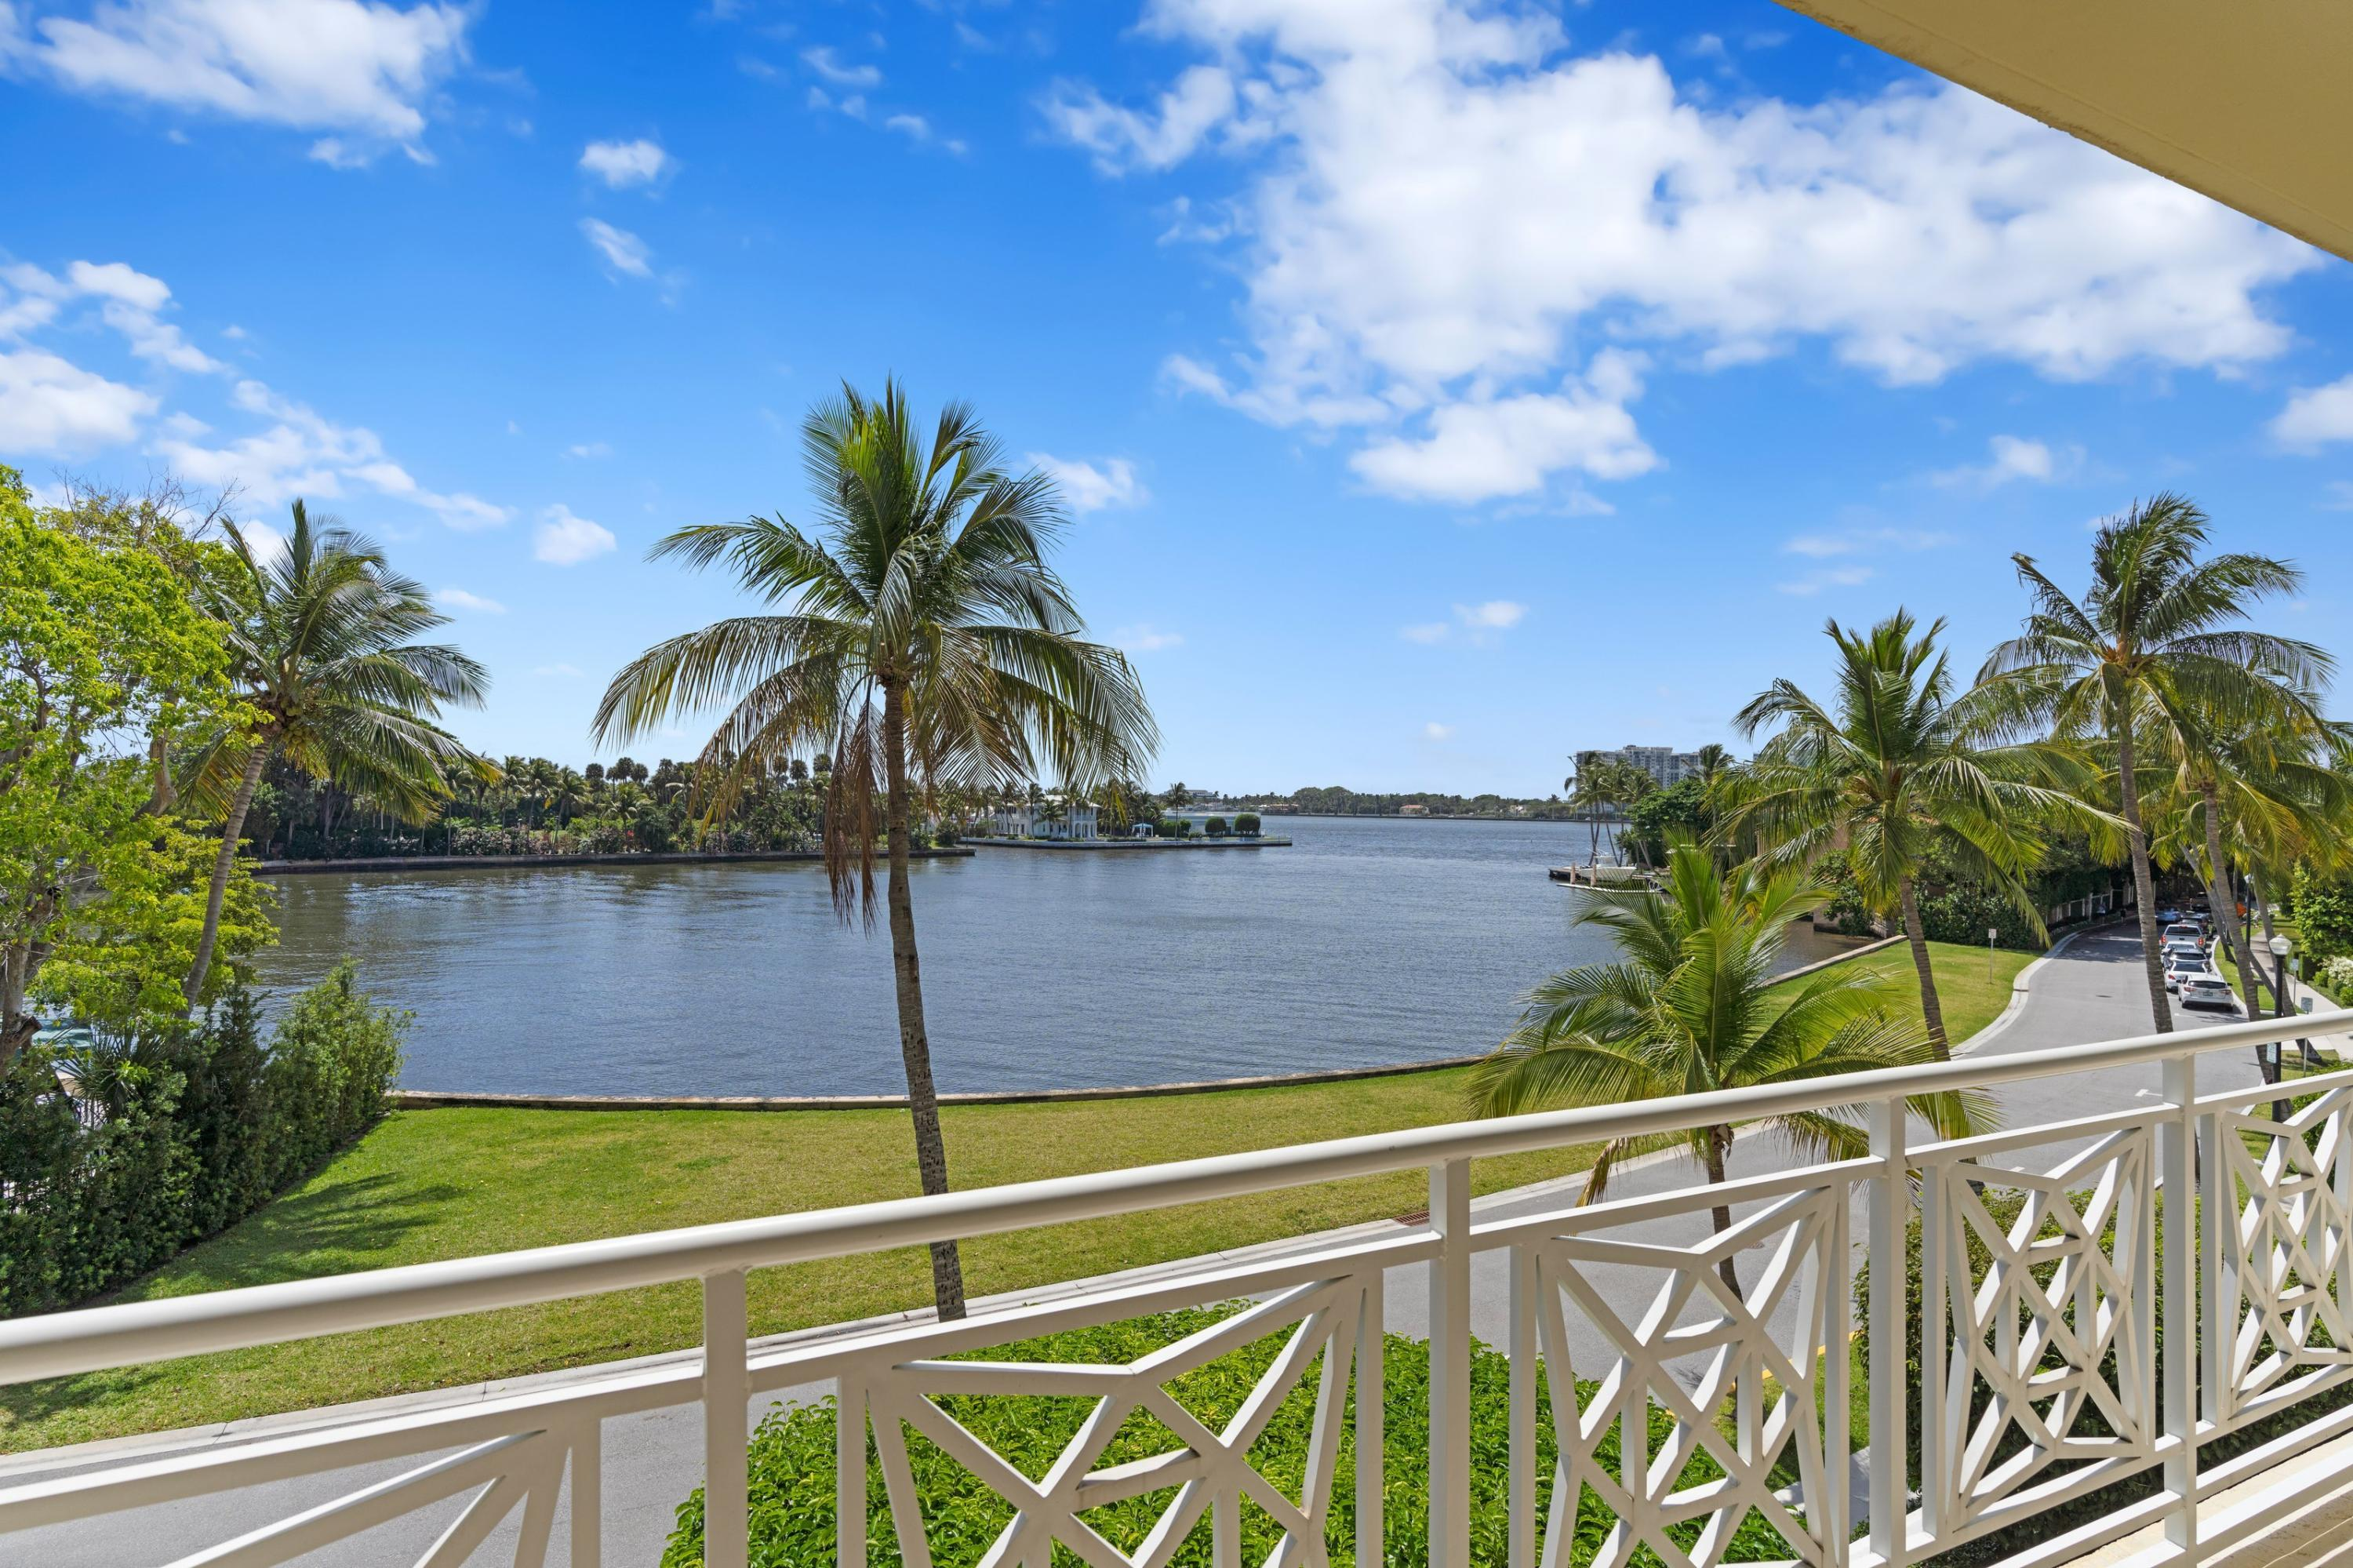 Love the size and scale of this impressive custom renovated 3 Bedroom, 3.1 Bath coop, which offers expansive direct Intracoastal water views. This gracious and beautifully proportioned 2,762 SF luxurious apartment has a living room, den\media room, dining area with bar, custom wood paneled office and chef's kitchen, all with high ceilings. Hurricane impact windows with electric shades, Lutron lighting and sound system throughout. Completely turnkey as it comes furnished down to the linens and a total of 9 televisions; one in every room. An elevator takes you directly to the apartment for privacy. The Villas is a full service, White Glove Building with a new fully equipped gym. One small pet allowed. One covered parking space. Enjoy living on the QUIET end of world famous Worth Ave!